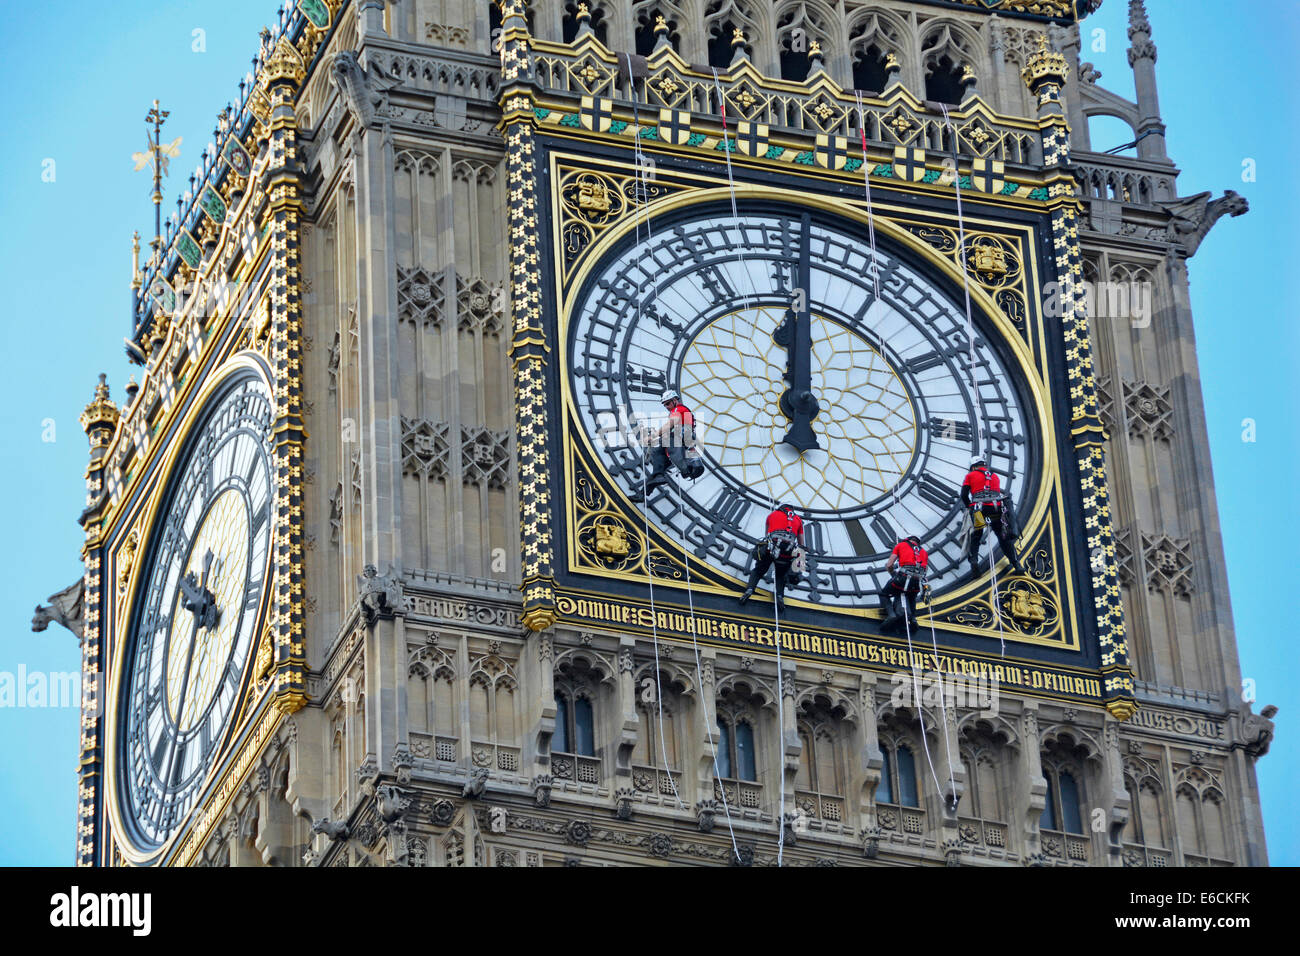 Big Ben Elizabeth Tower clock face being cleaned with hands set to wrong time of 12 noon or midnight Stock Photo